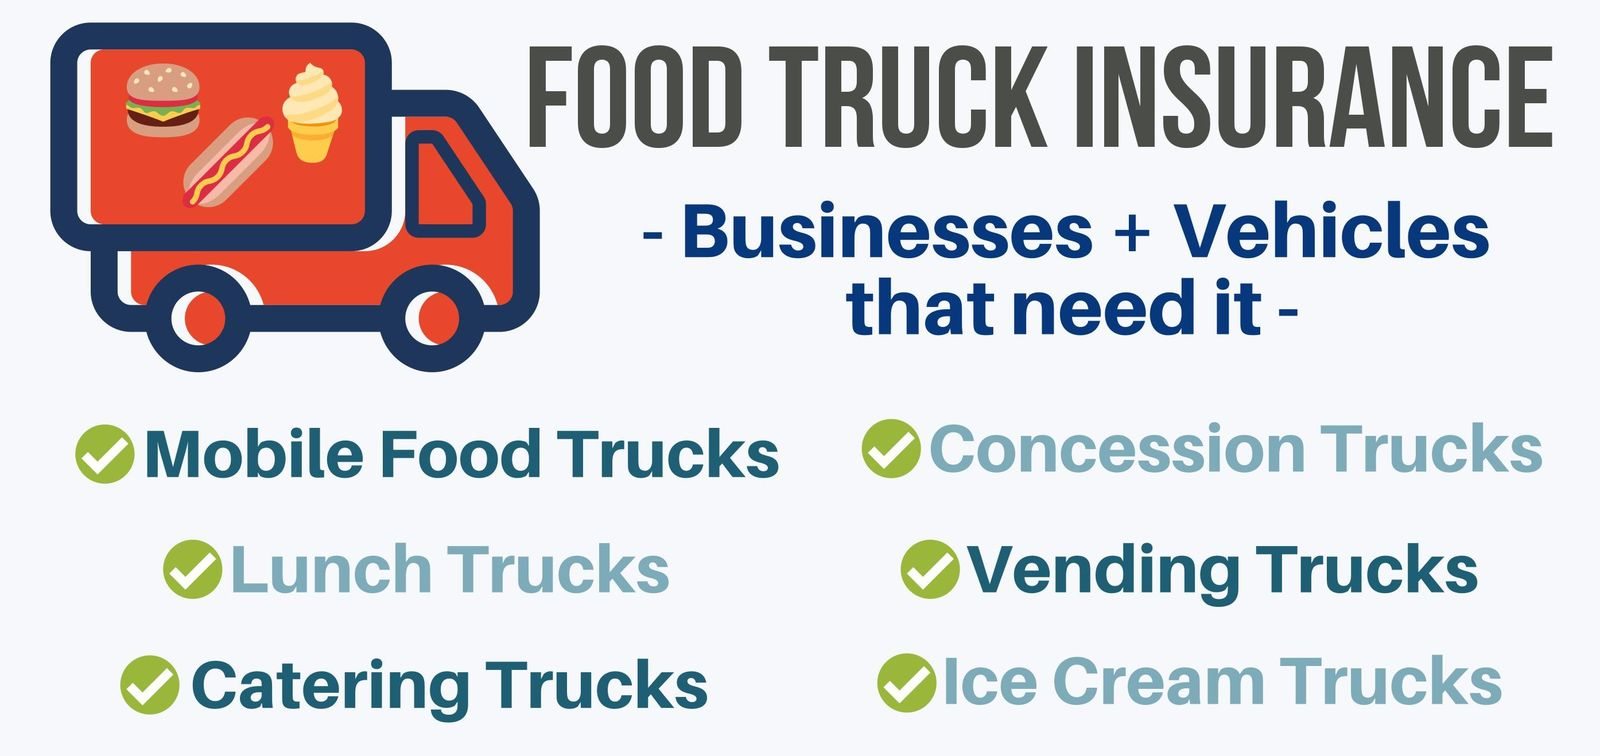 Examples of vehicles requiring food truck insurance coverage